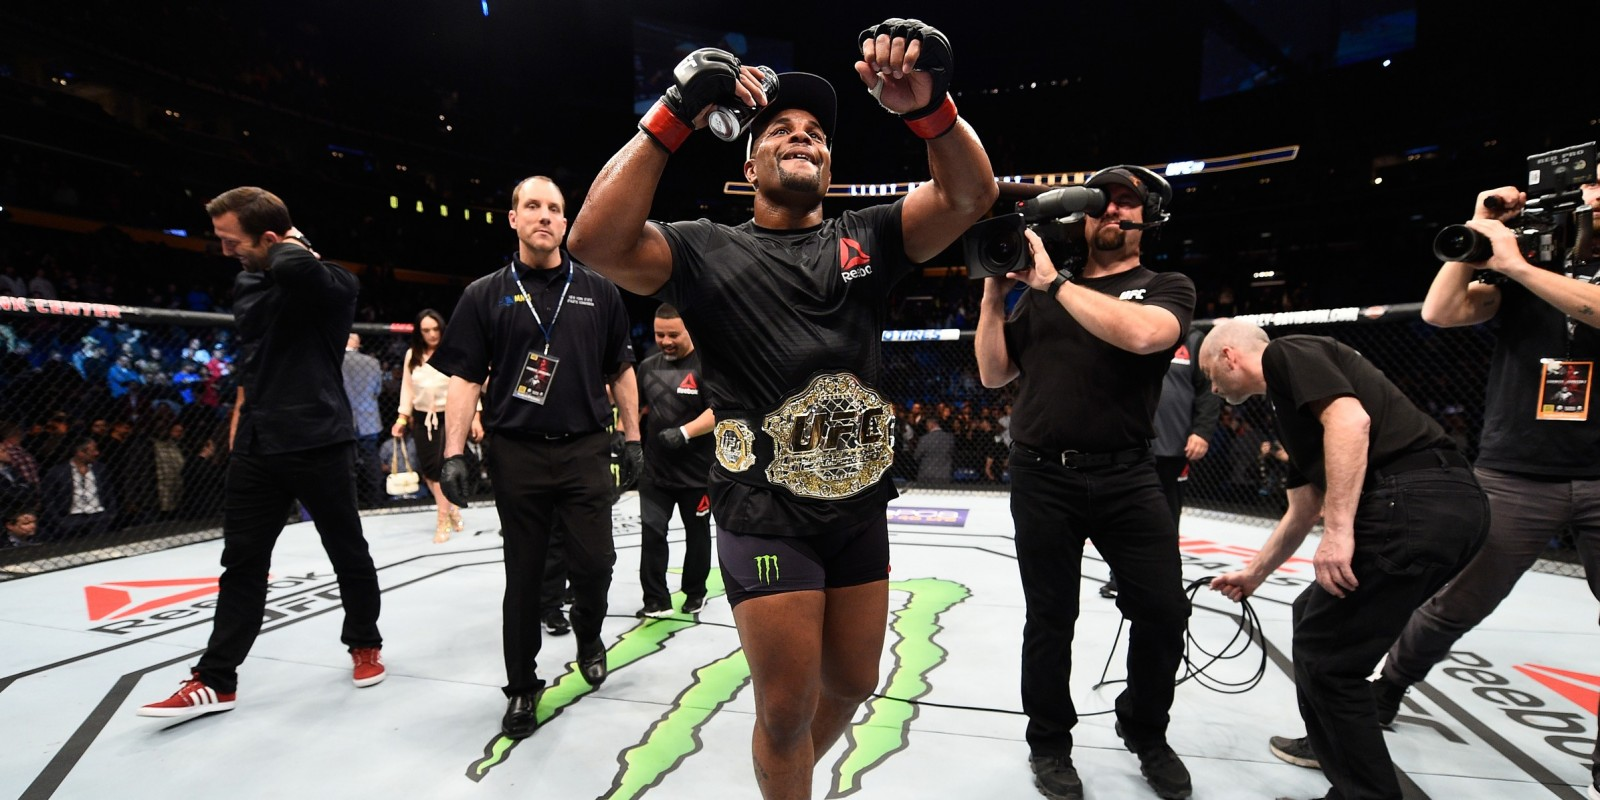 UFC Light Heavyweight Champion Daniel Cormier celebrates after defeating Anthony Johnson during the UFC 210 event at the KeyBank Center on April 8, 2017 in Buffalo, New York